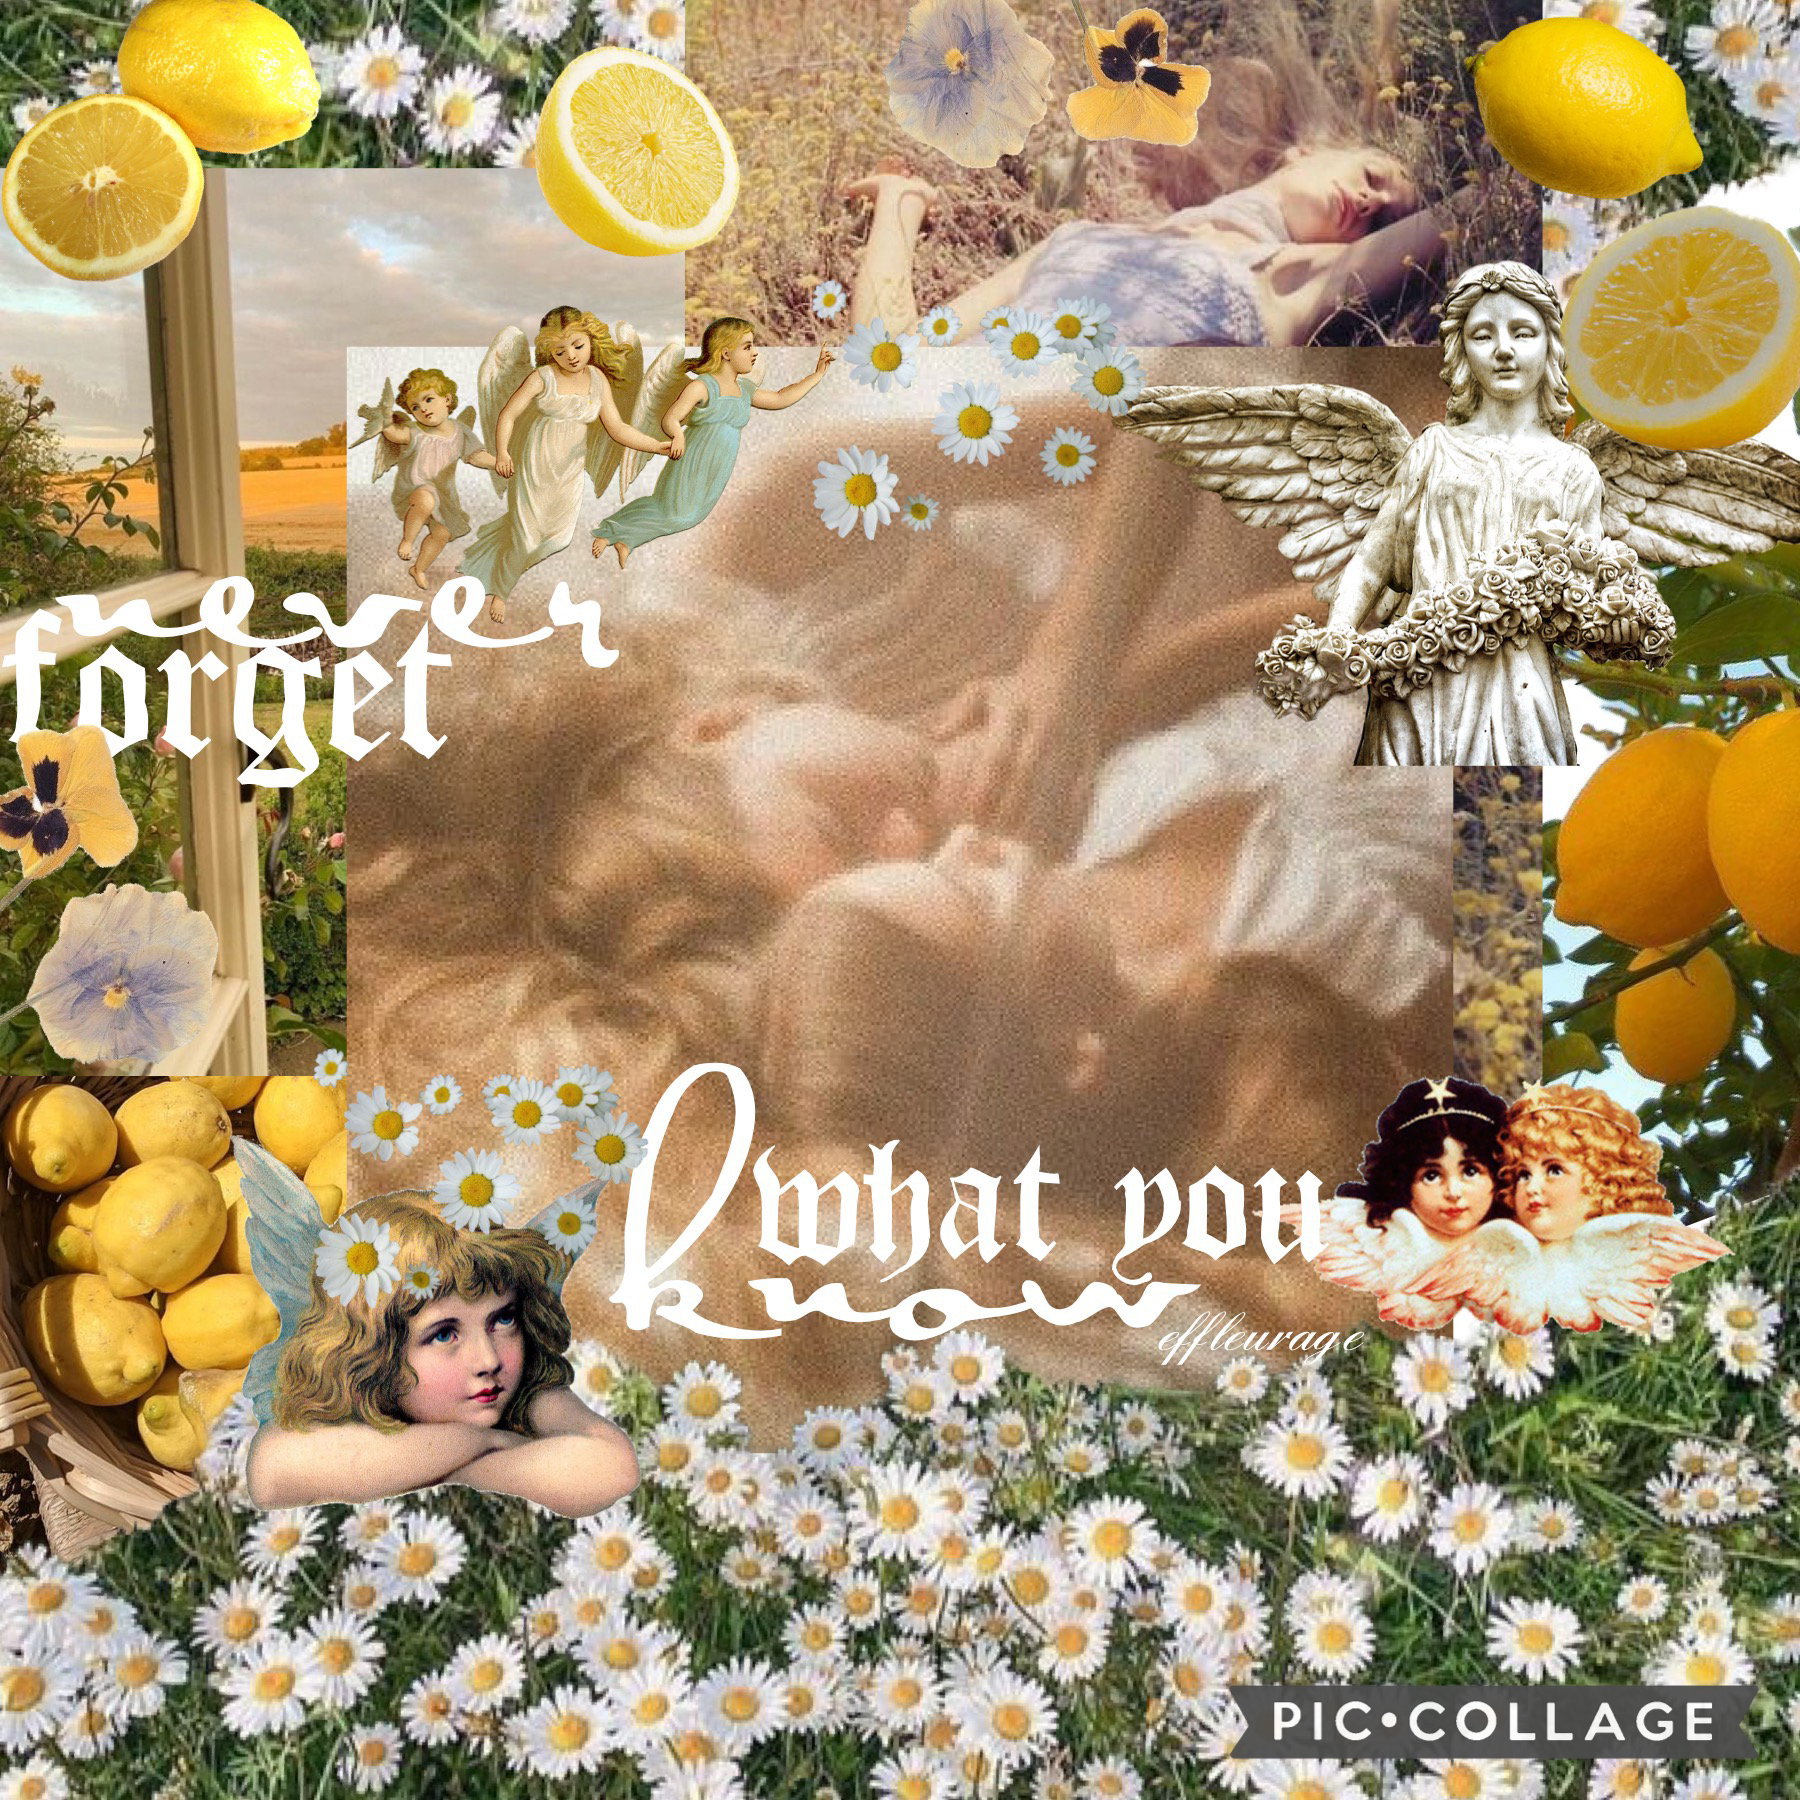 🍋tap🍋  i really like thisss! once again, this is inspired by multiple people so irdk who to credit bc i go and look at a bunch of collages not looking who made them and then like get ideas idk 🤷♀️ anyways, i hope you have a good rest of your day/evening/